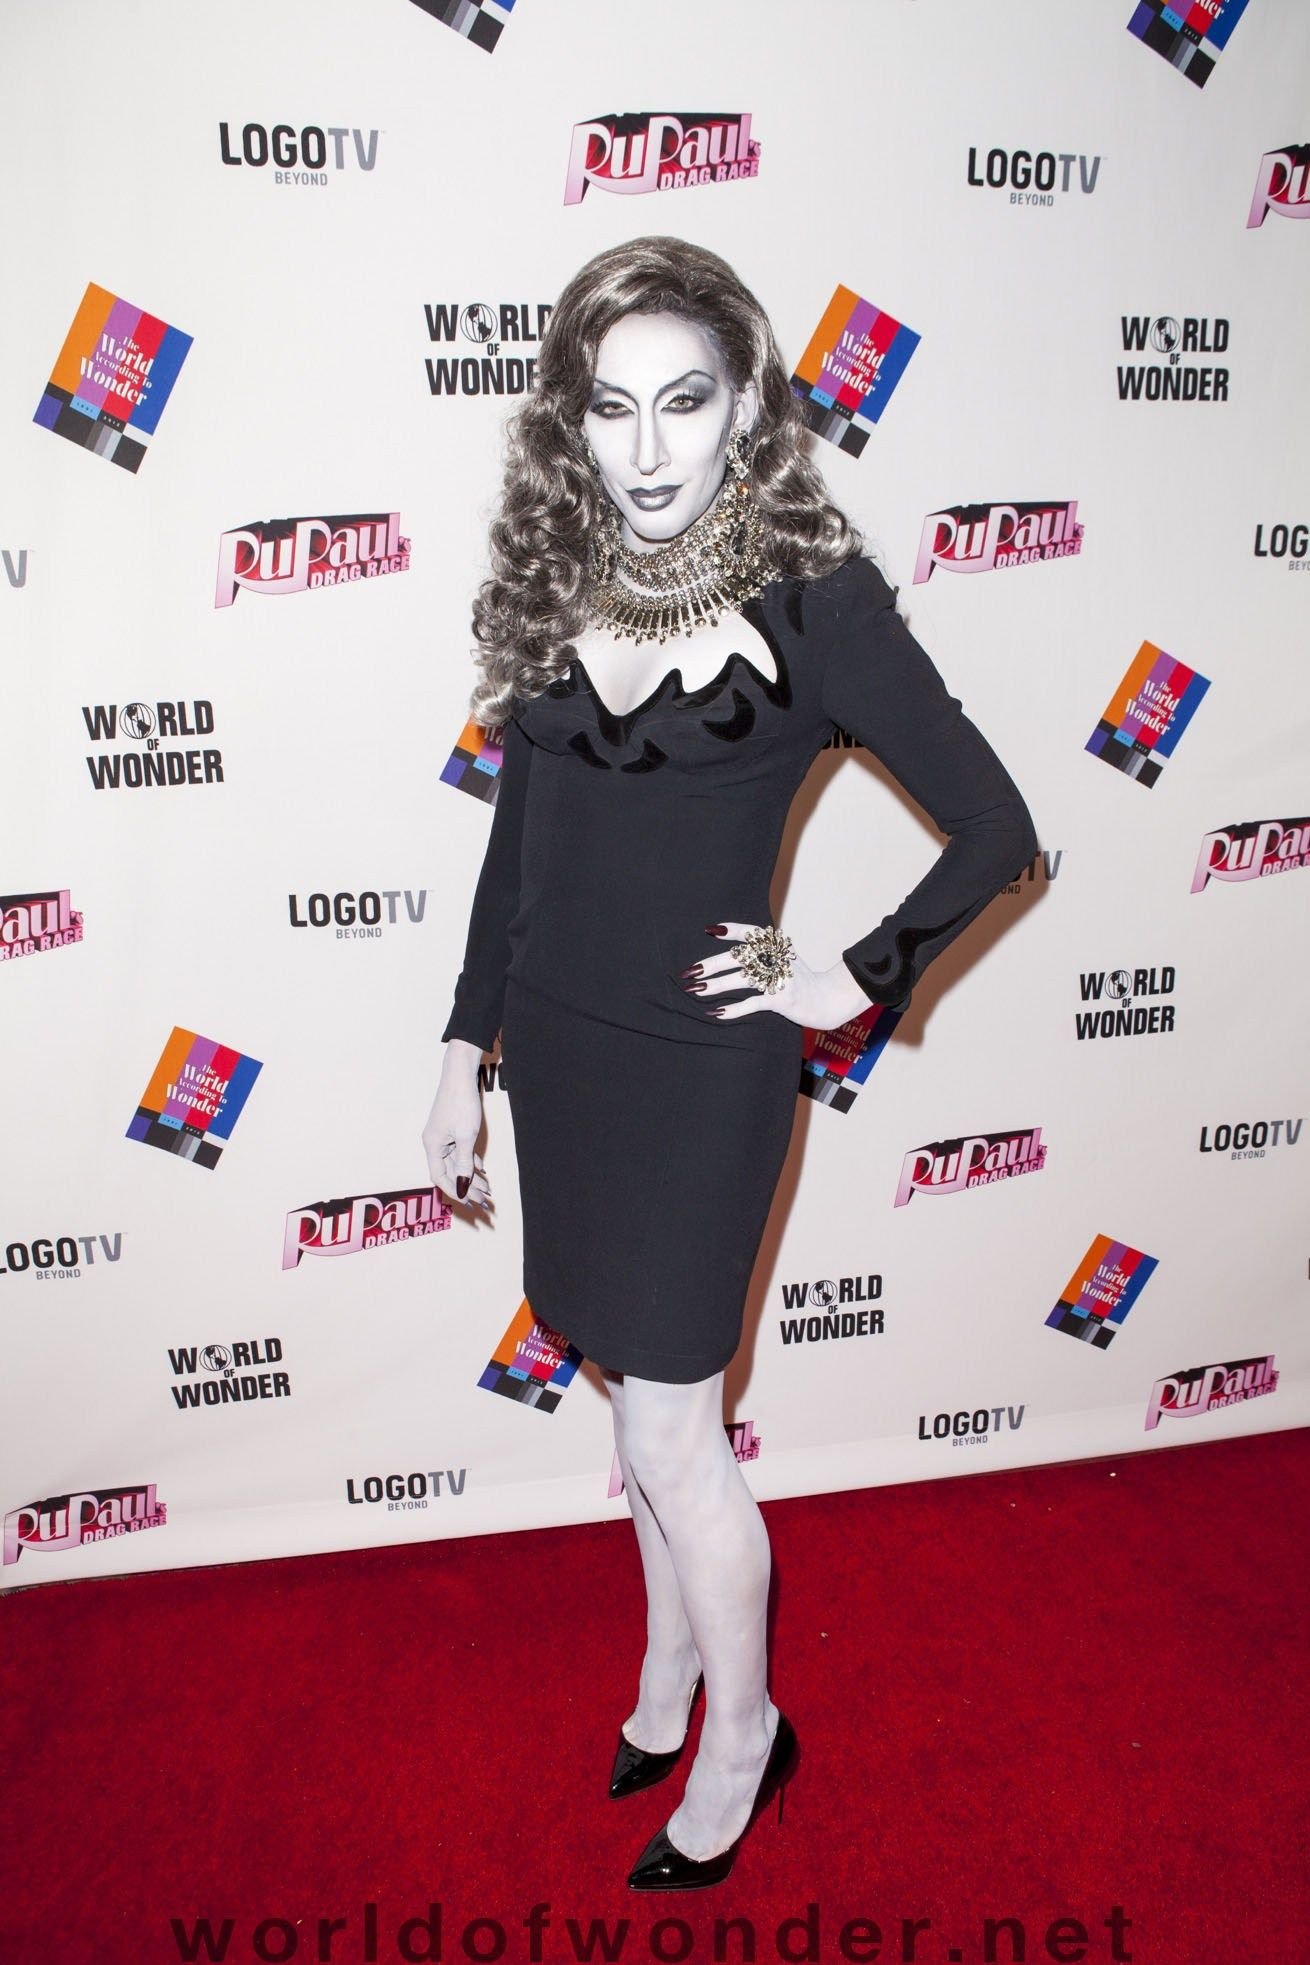 detox icunt in grayscale love it this is my favorite